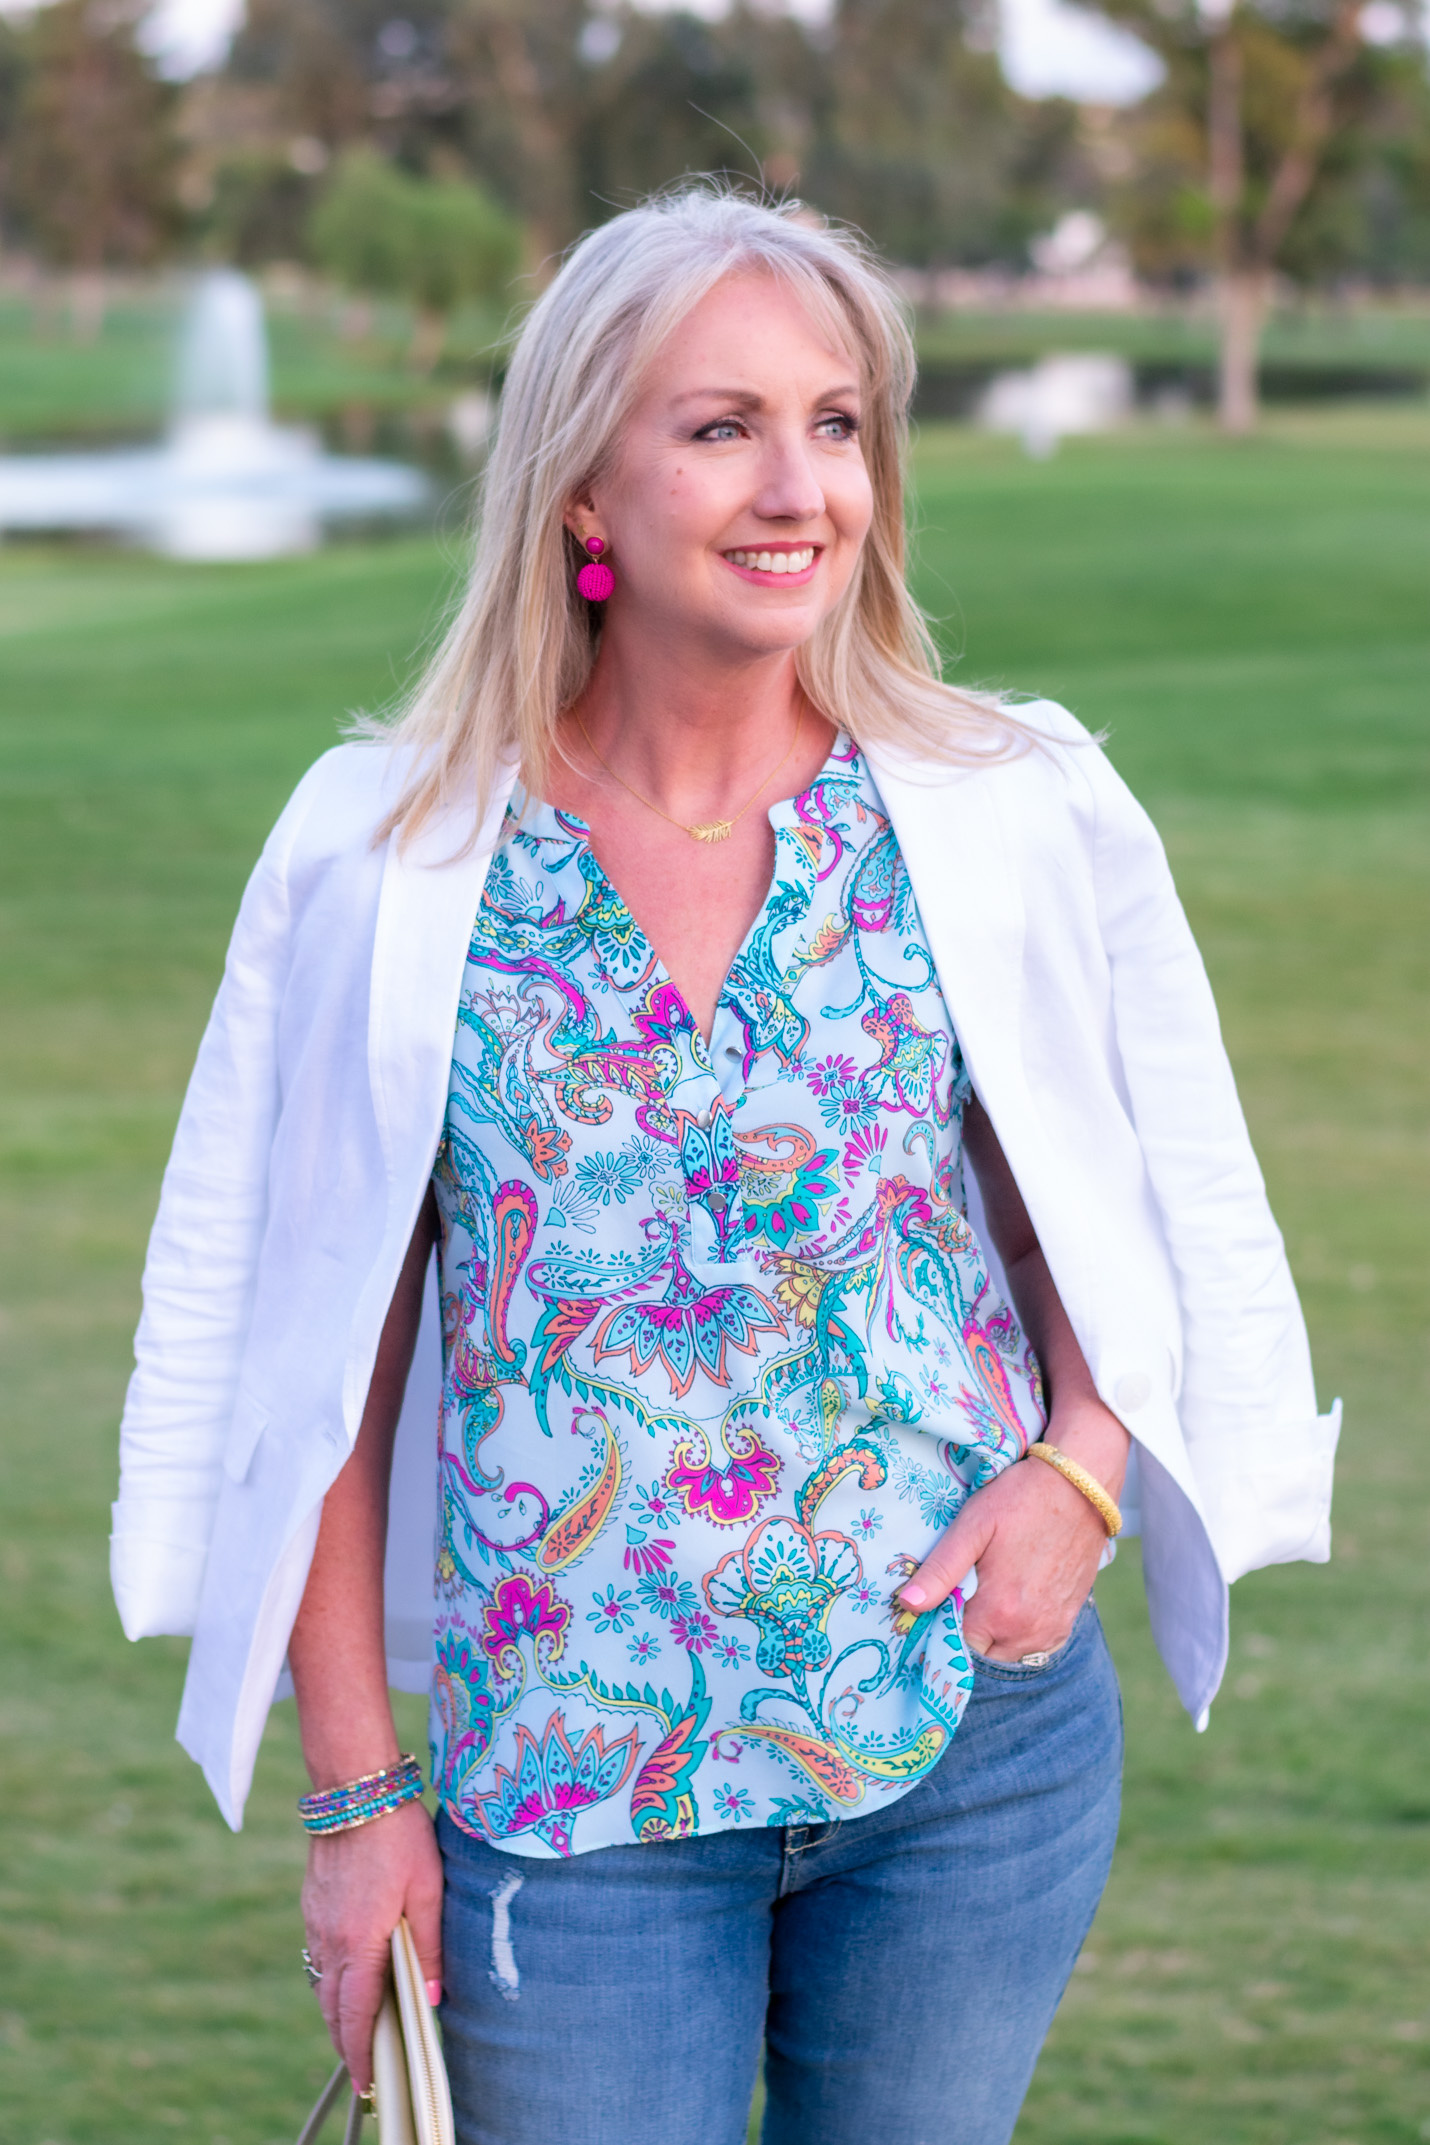 White Linen Blazer for Date Night